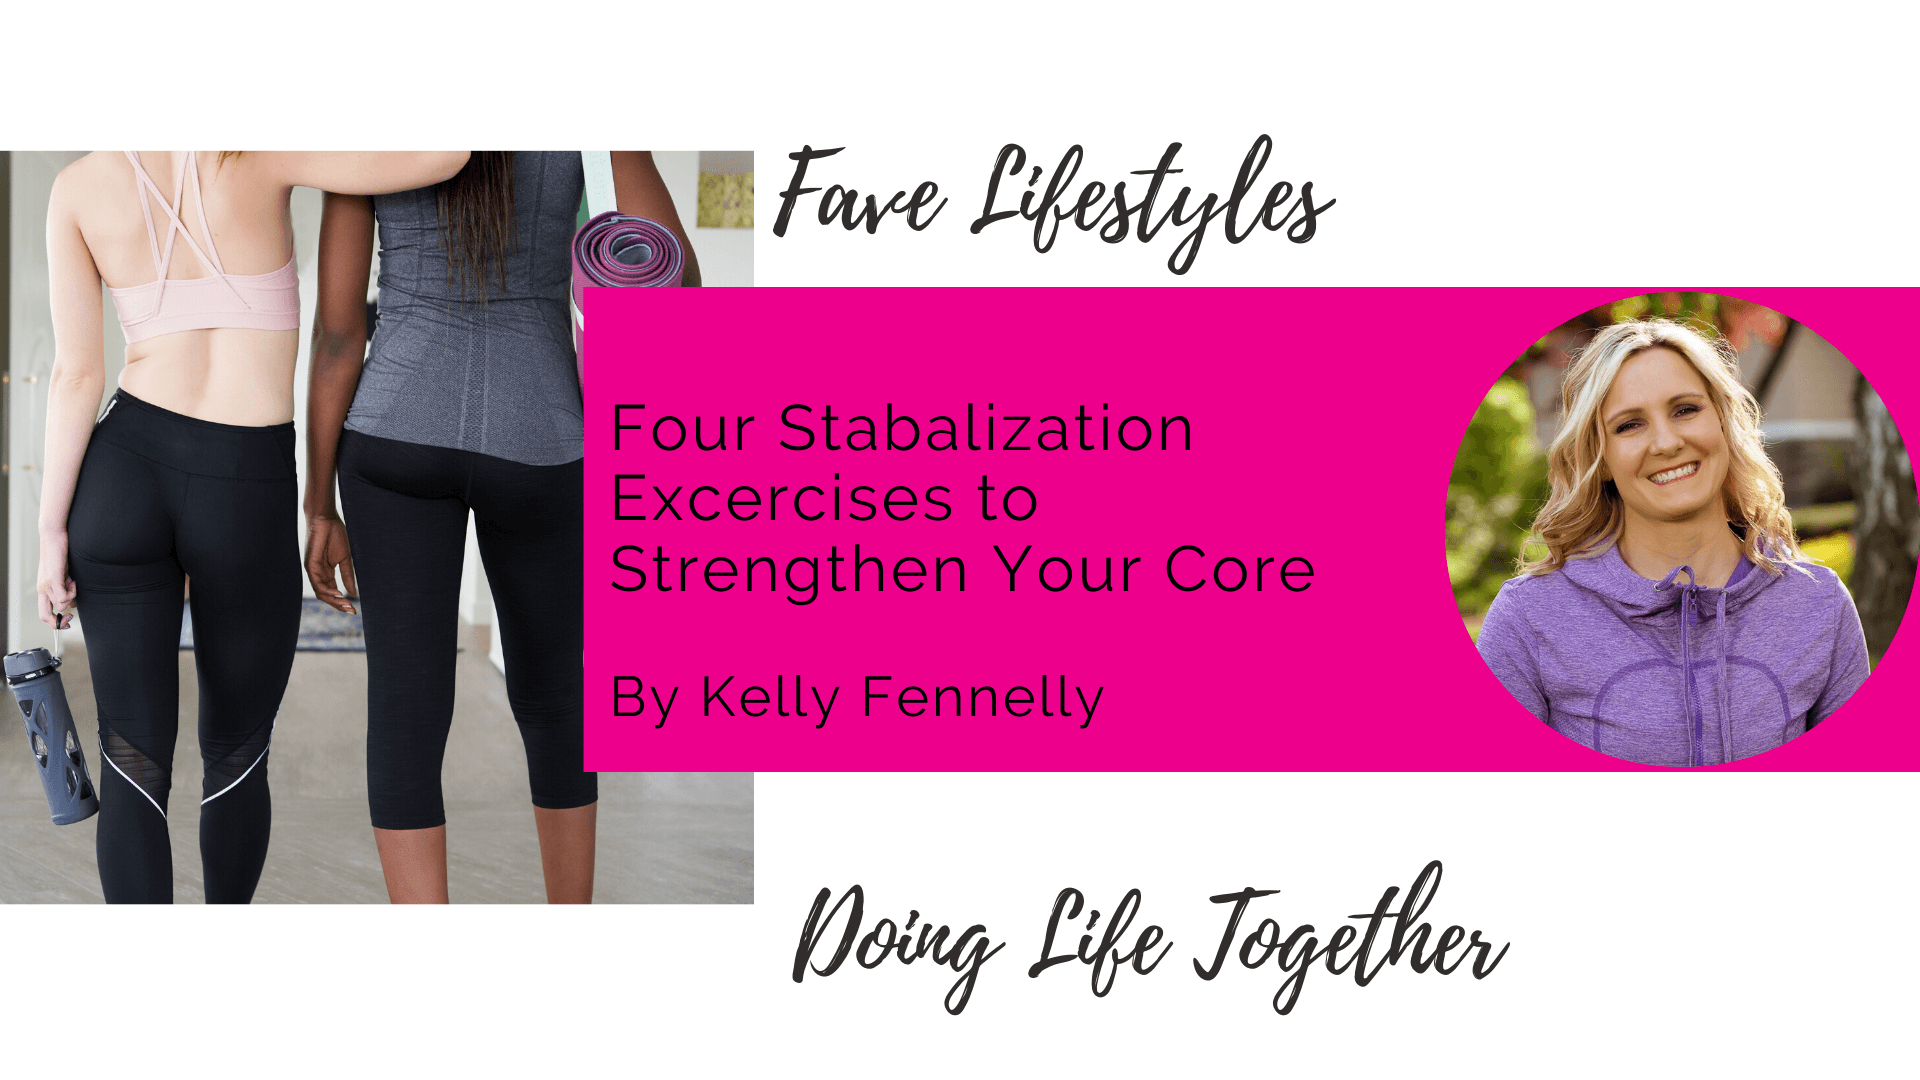 Four Stabilization Exercises to Strengthen Your Core